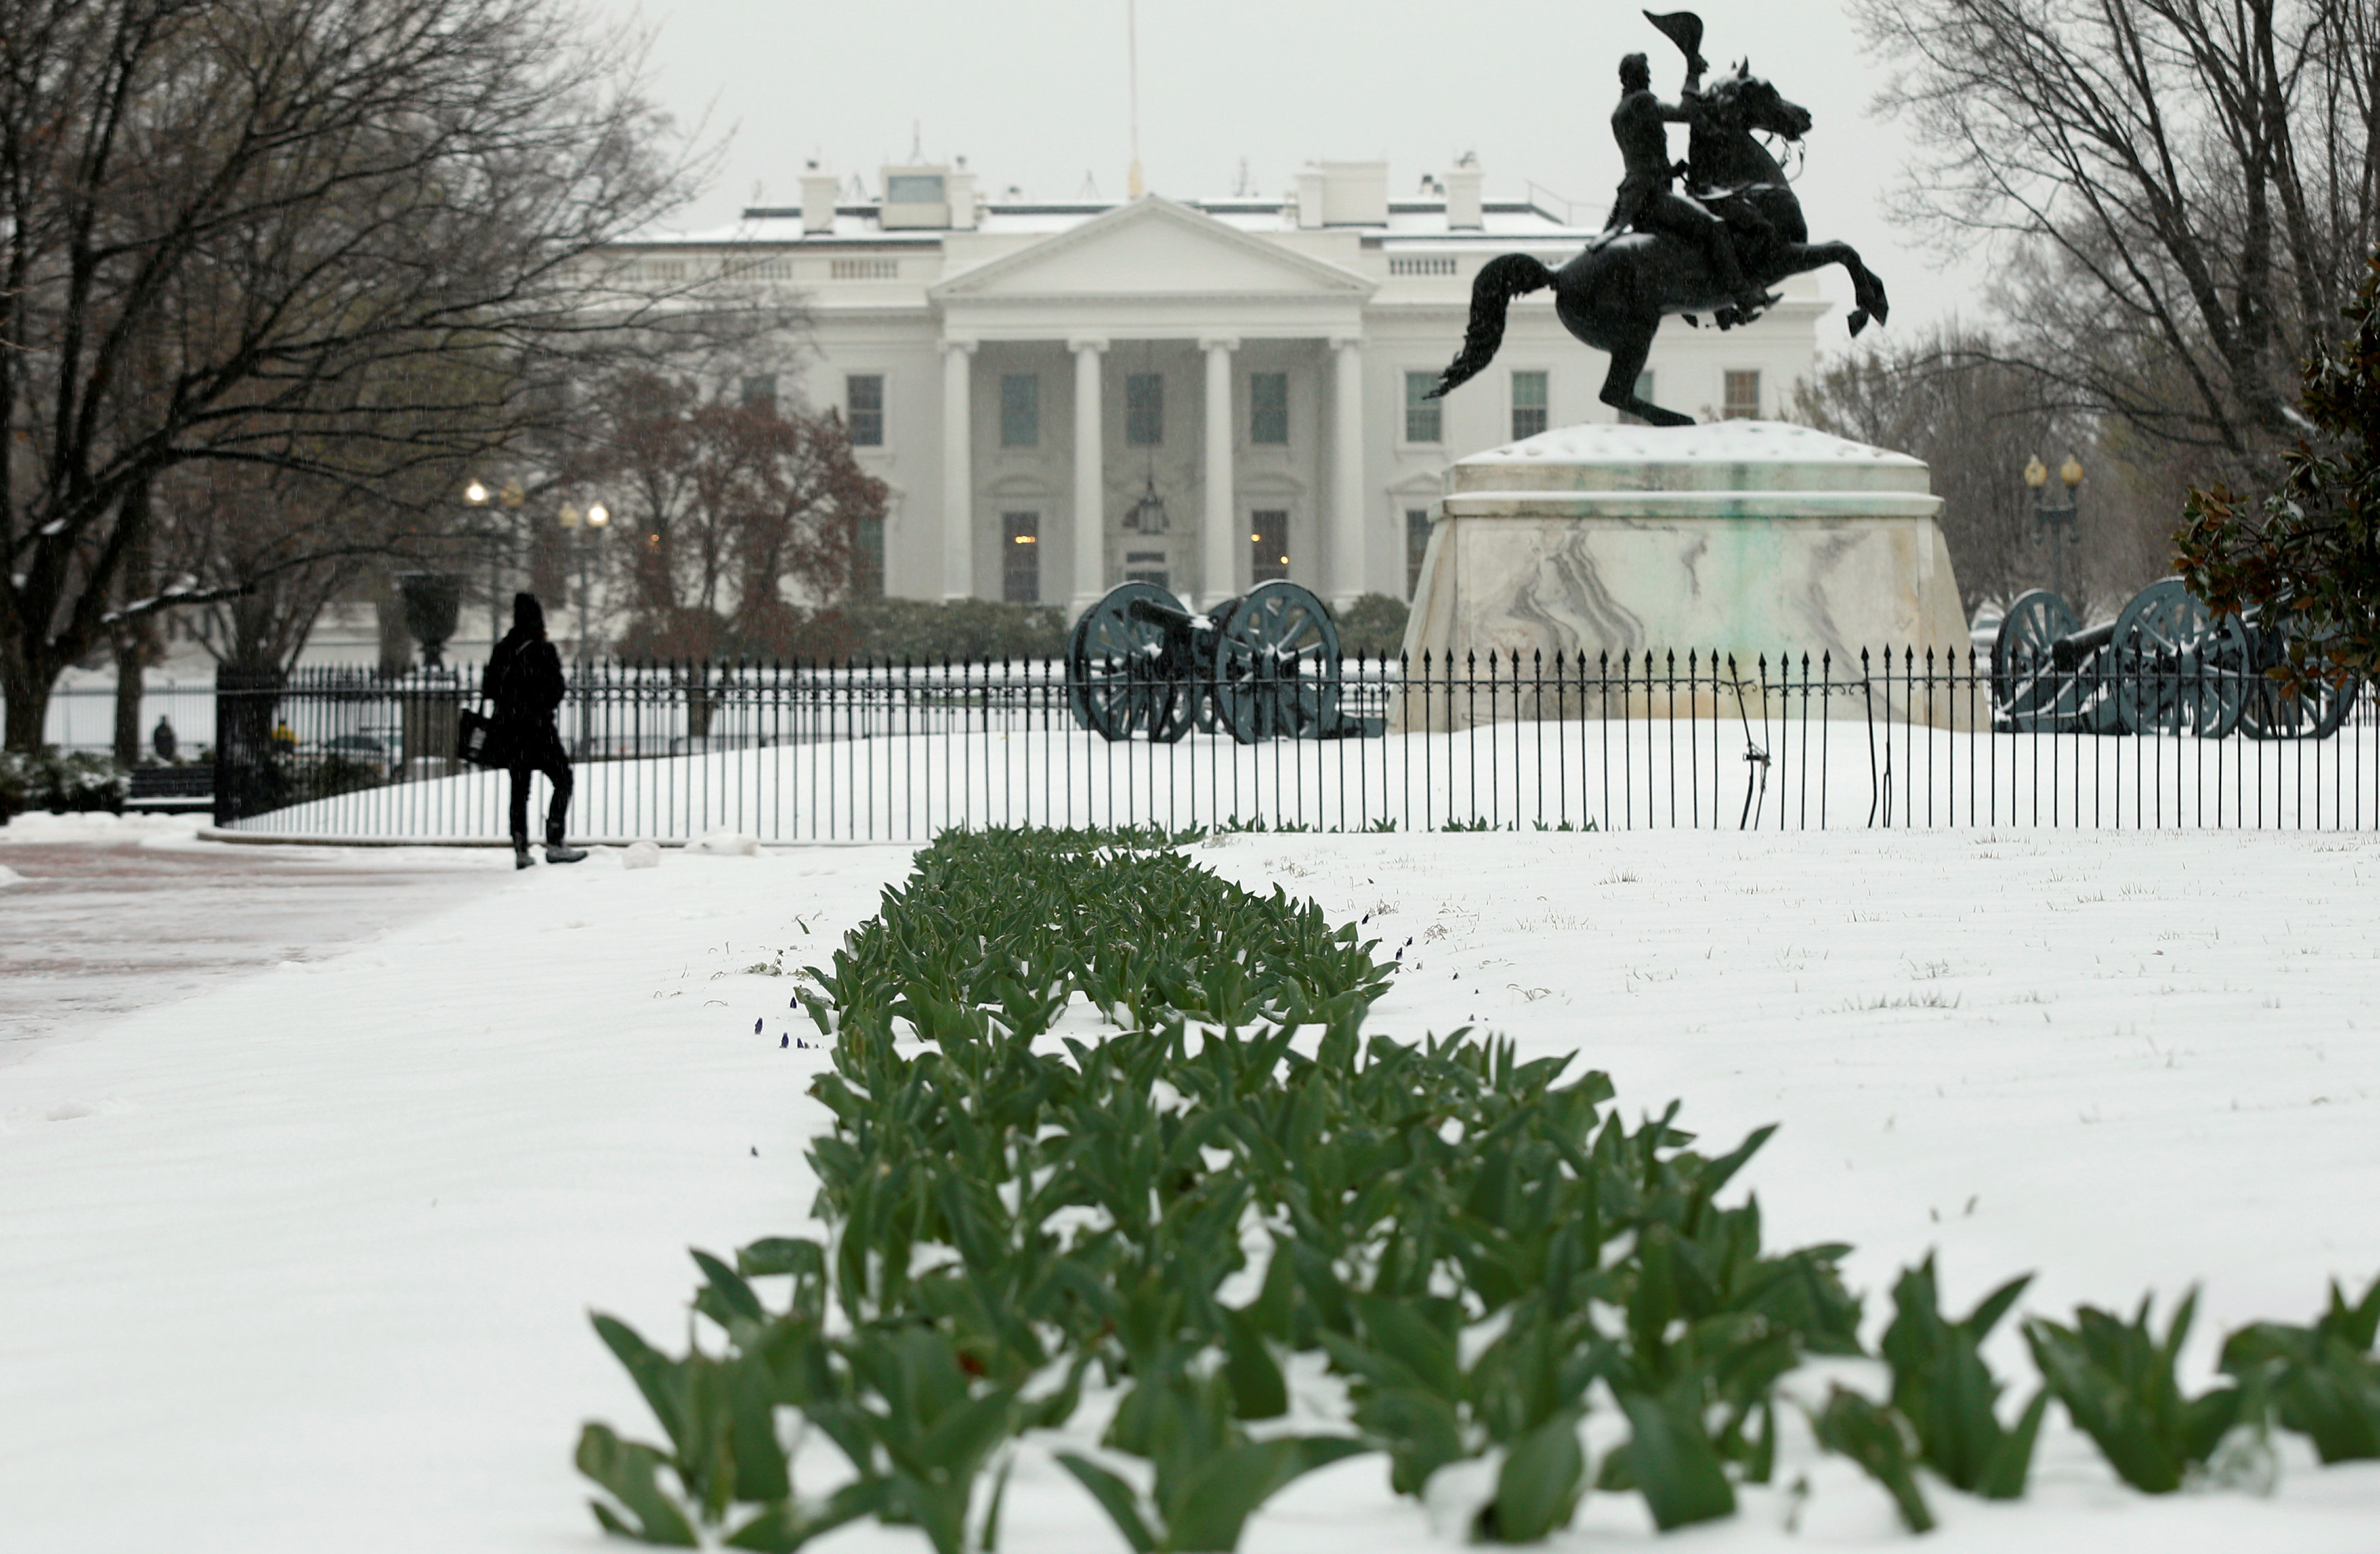 Person in Custody After Incident at White House Gates: Secret Service